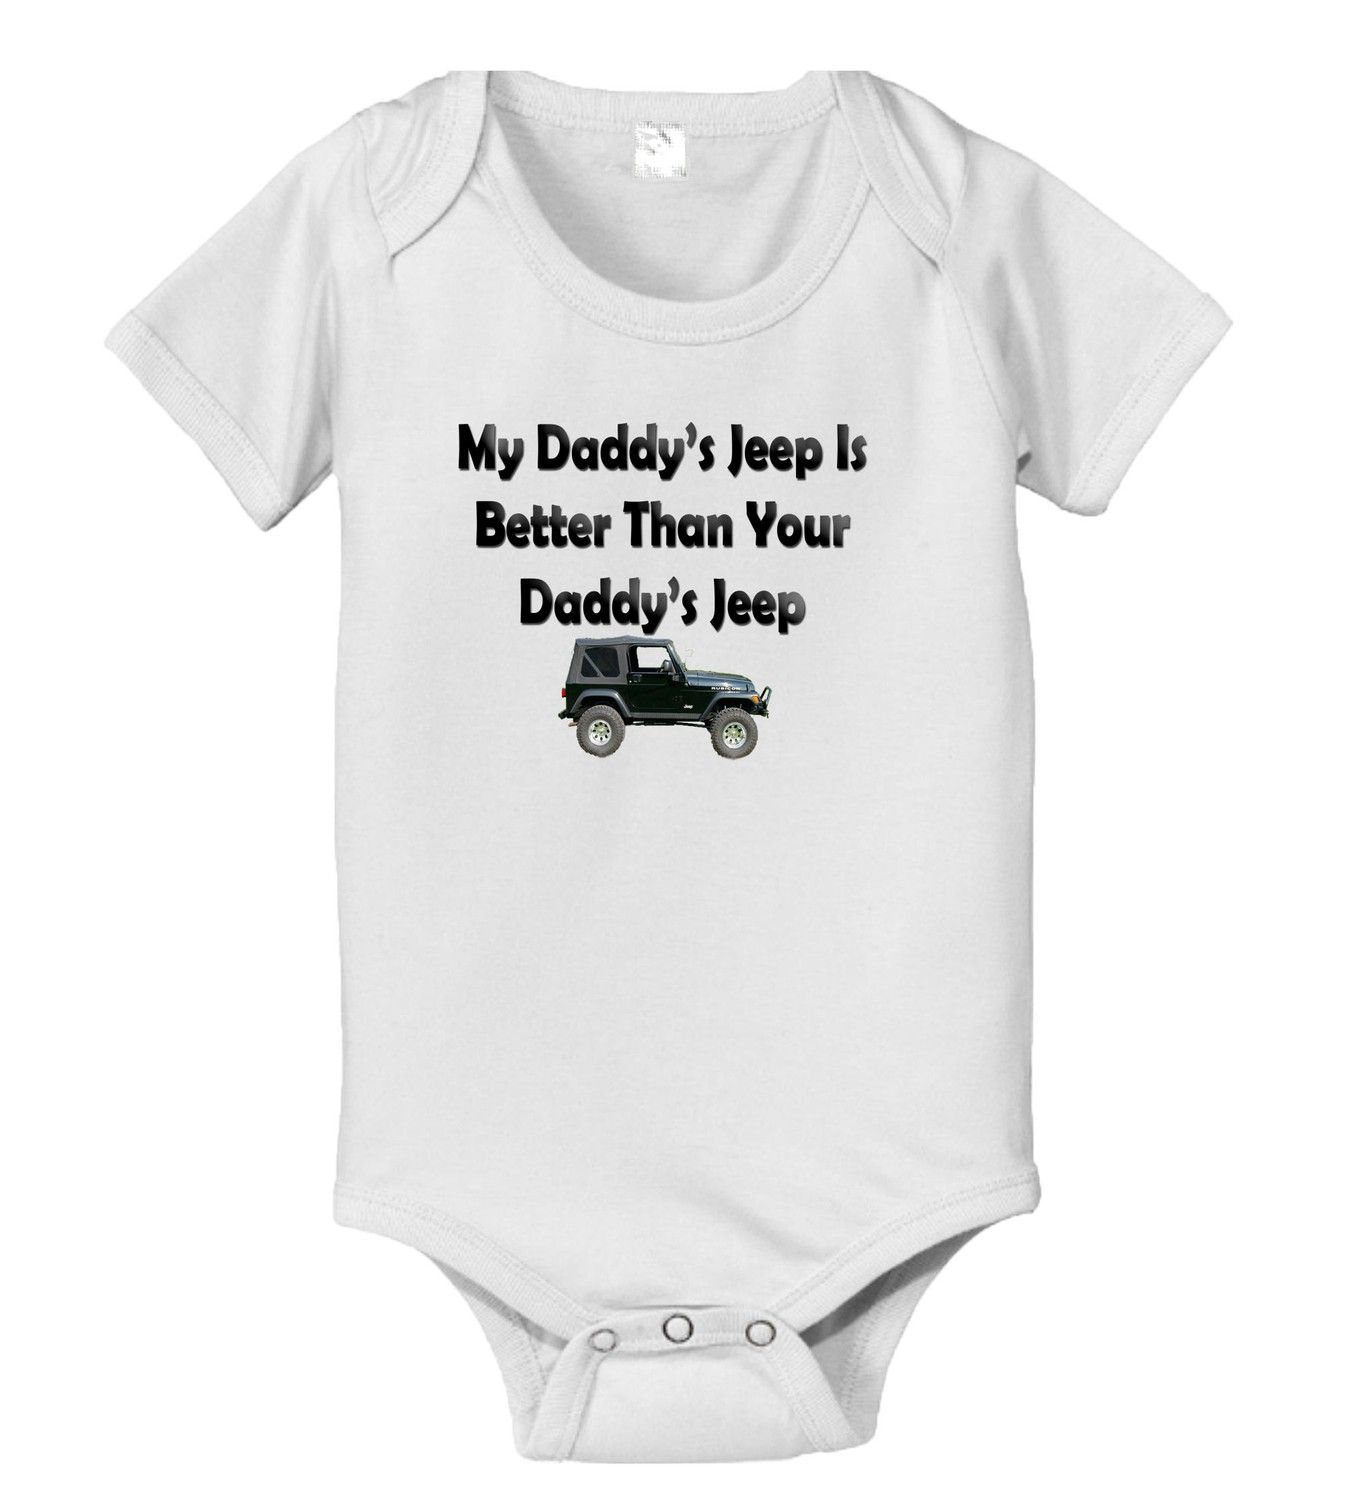 My Daddys Truck Is Better Than Your Daddys Truck Bodysuit